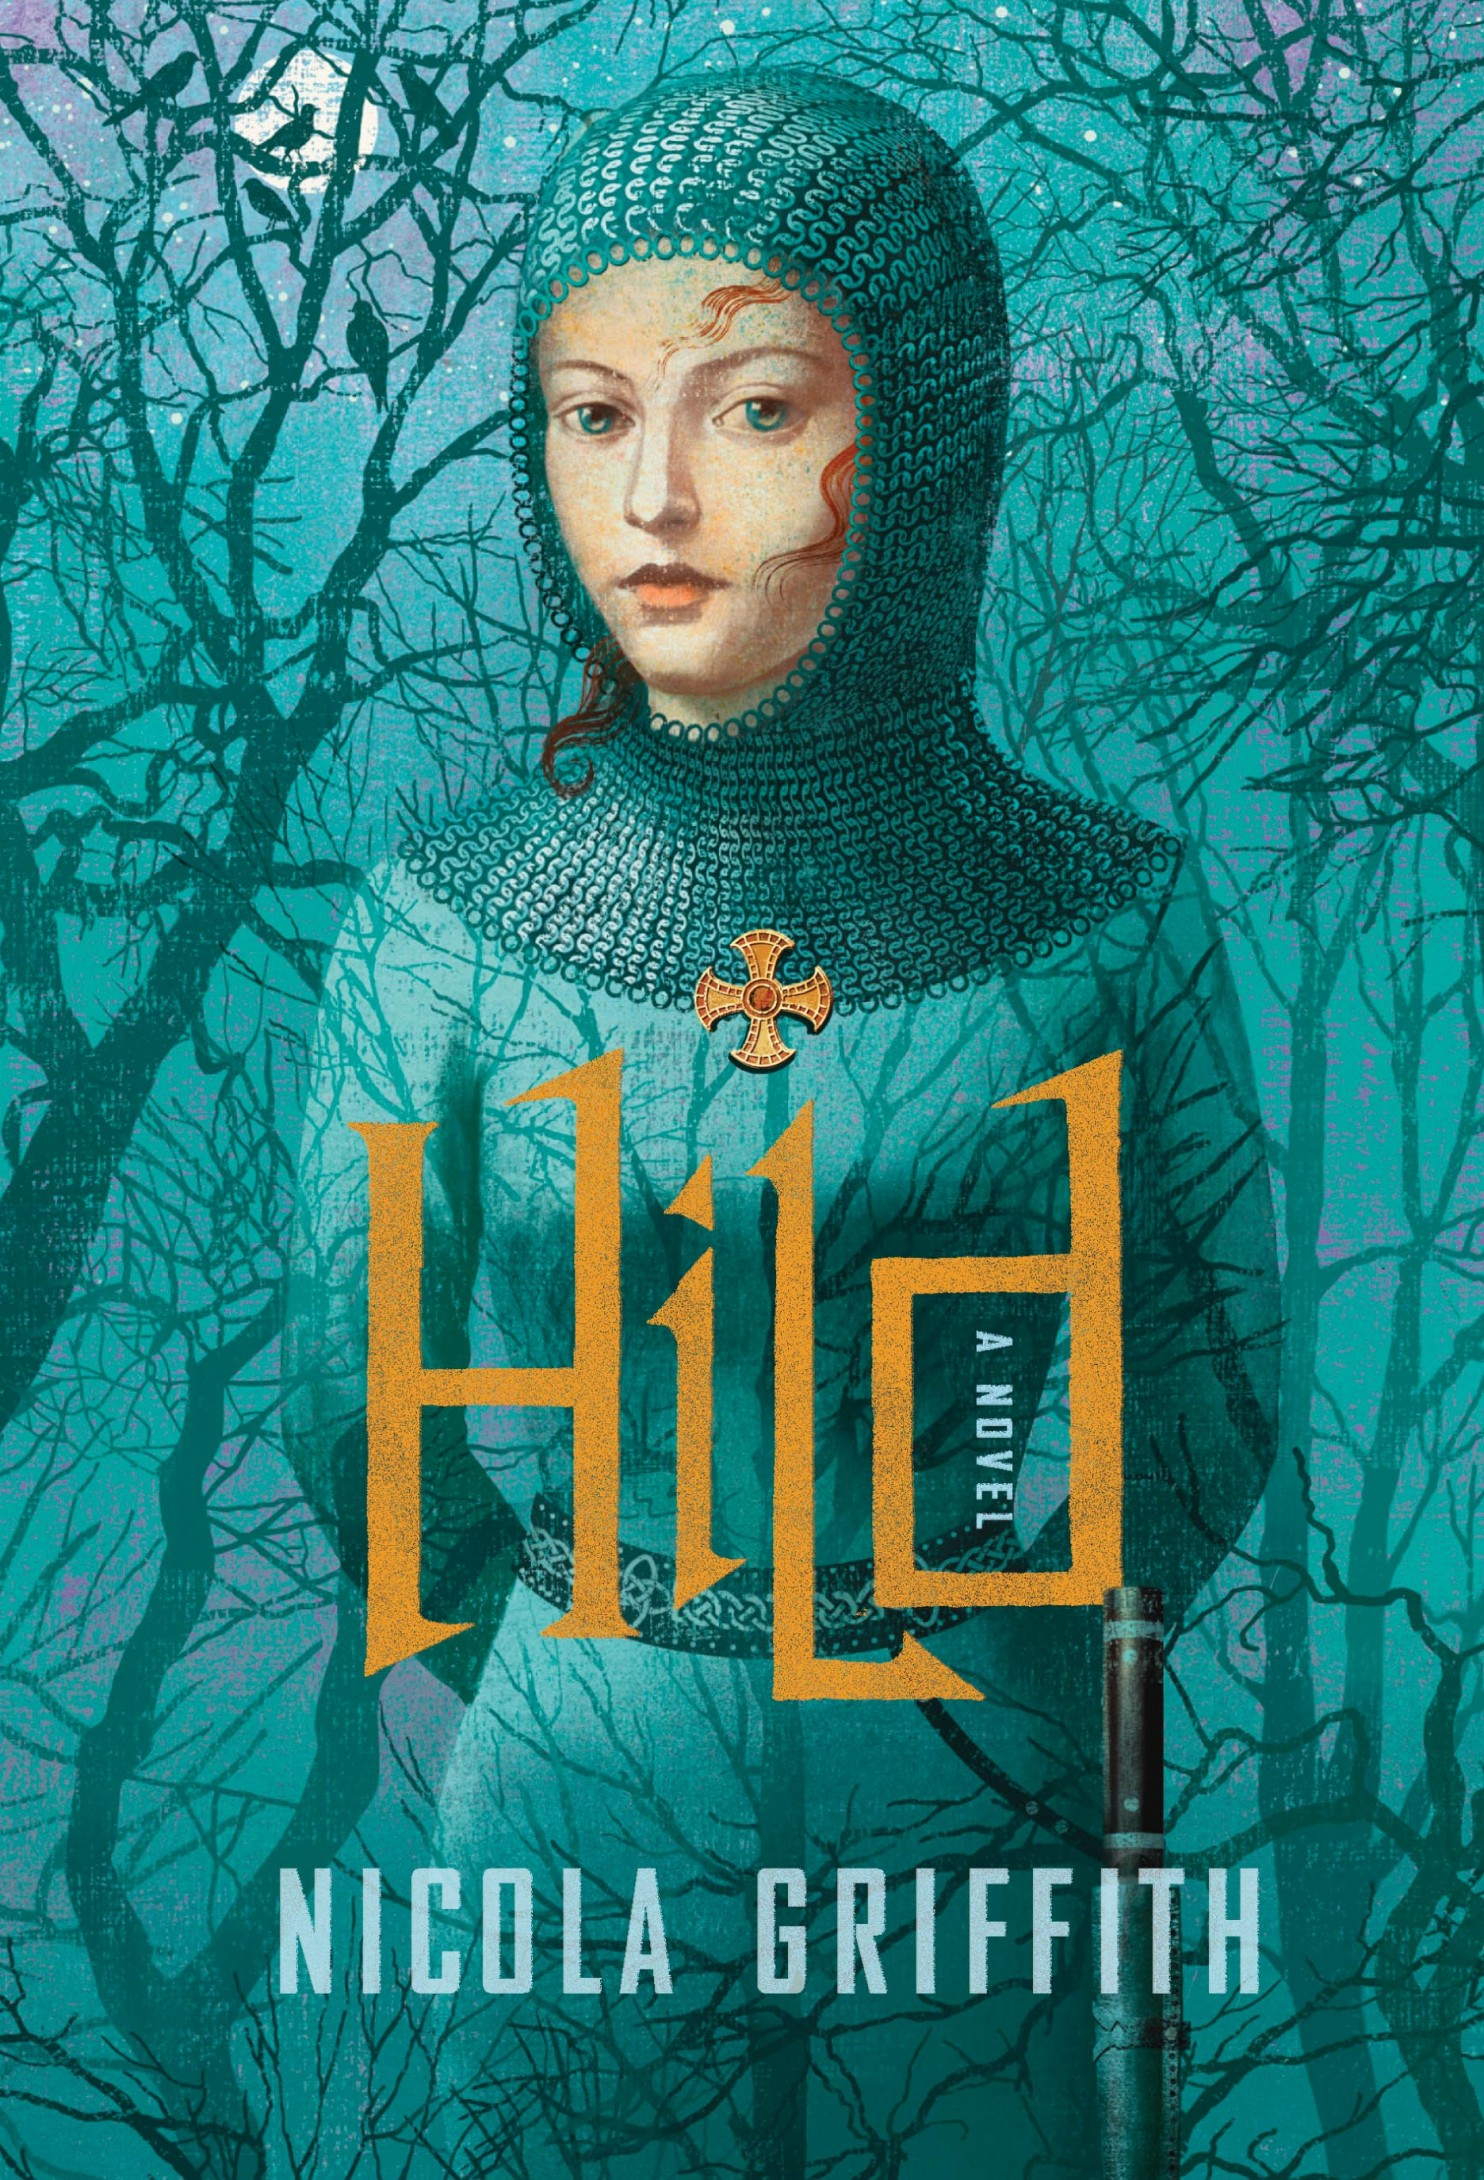 Hild by Nicola Griffith book cover